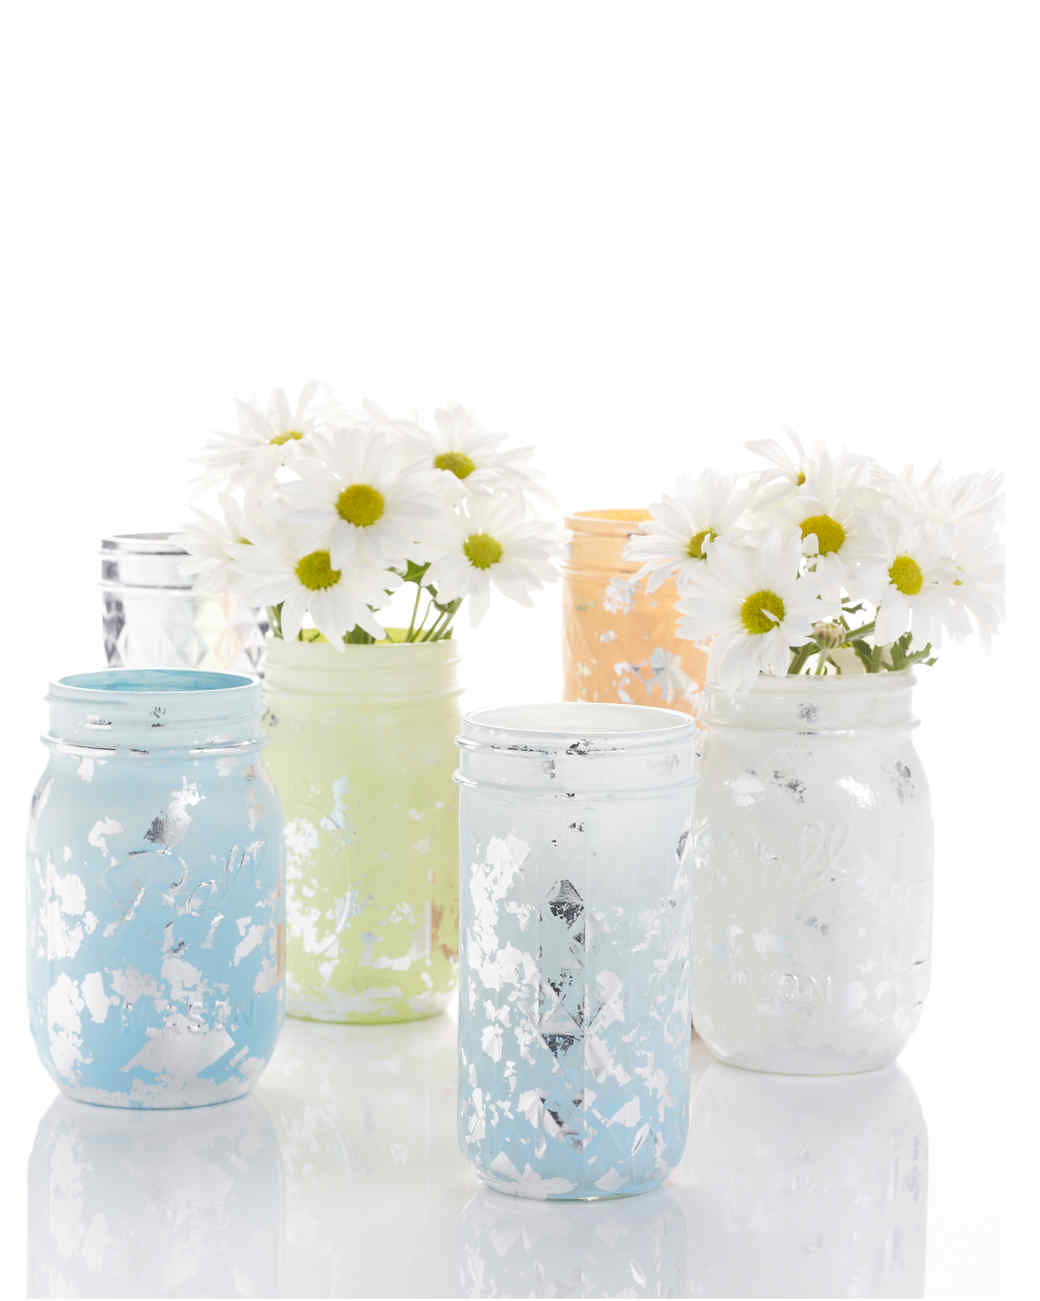 mscrafts-holiday14-decorator-masonjars-1014.jpg